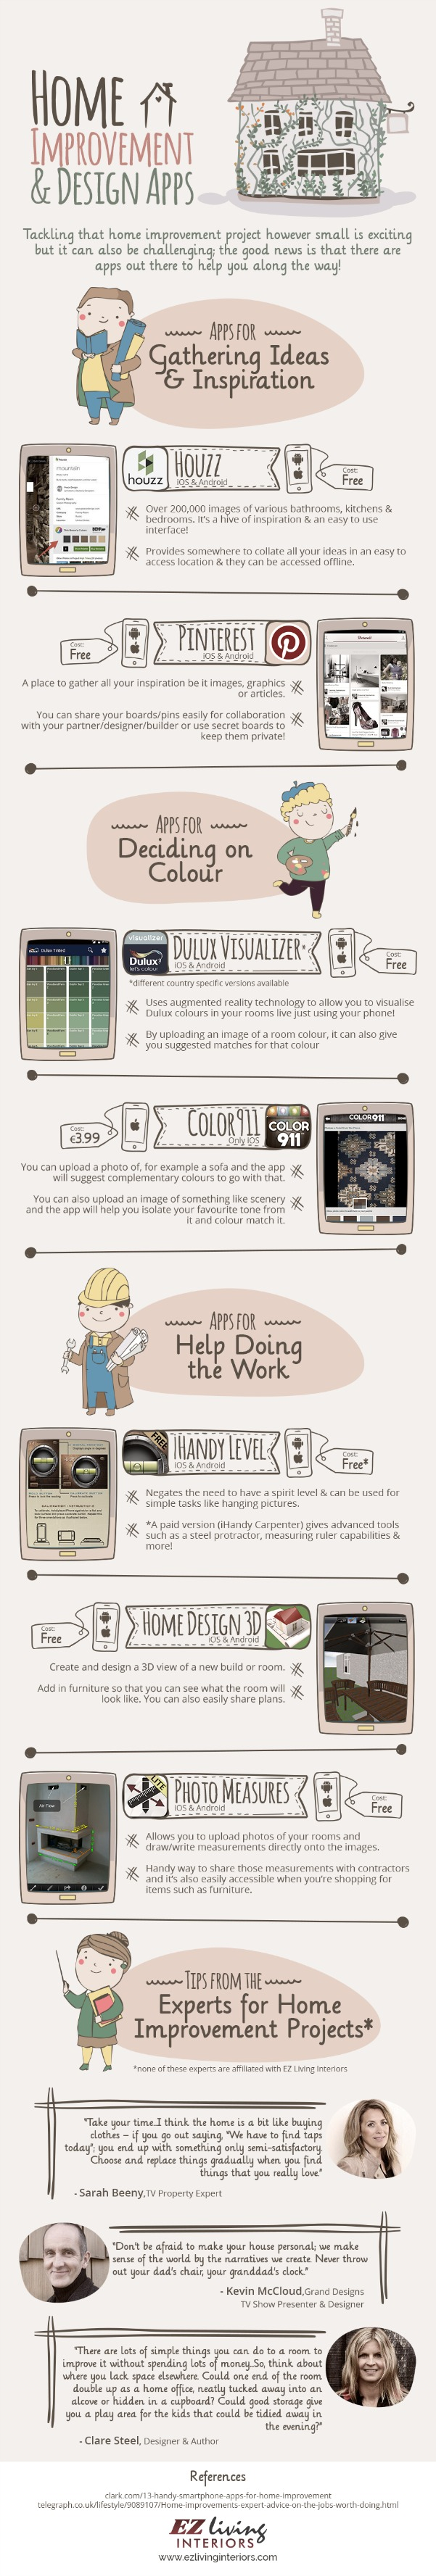 Apps for Home Improvement and Design Infographic